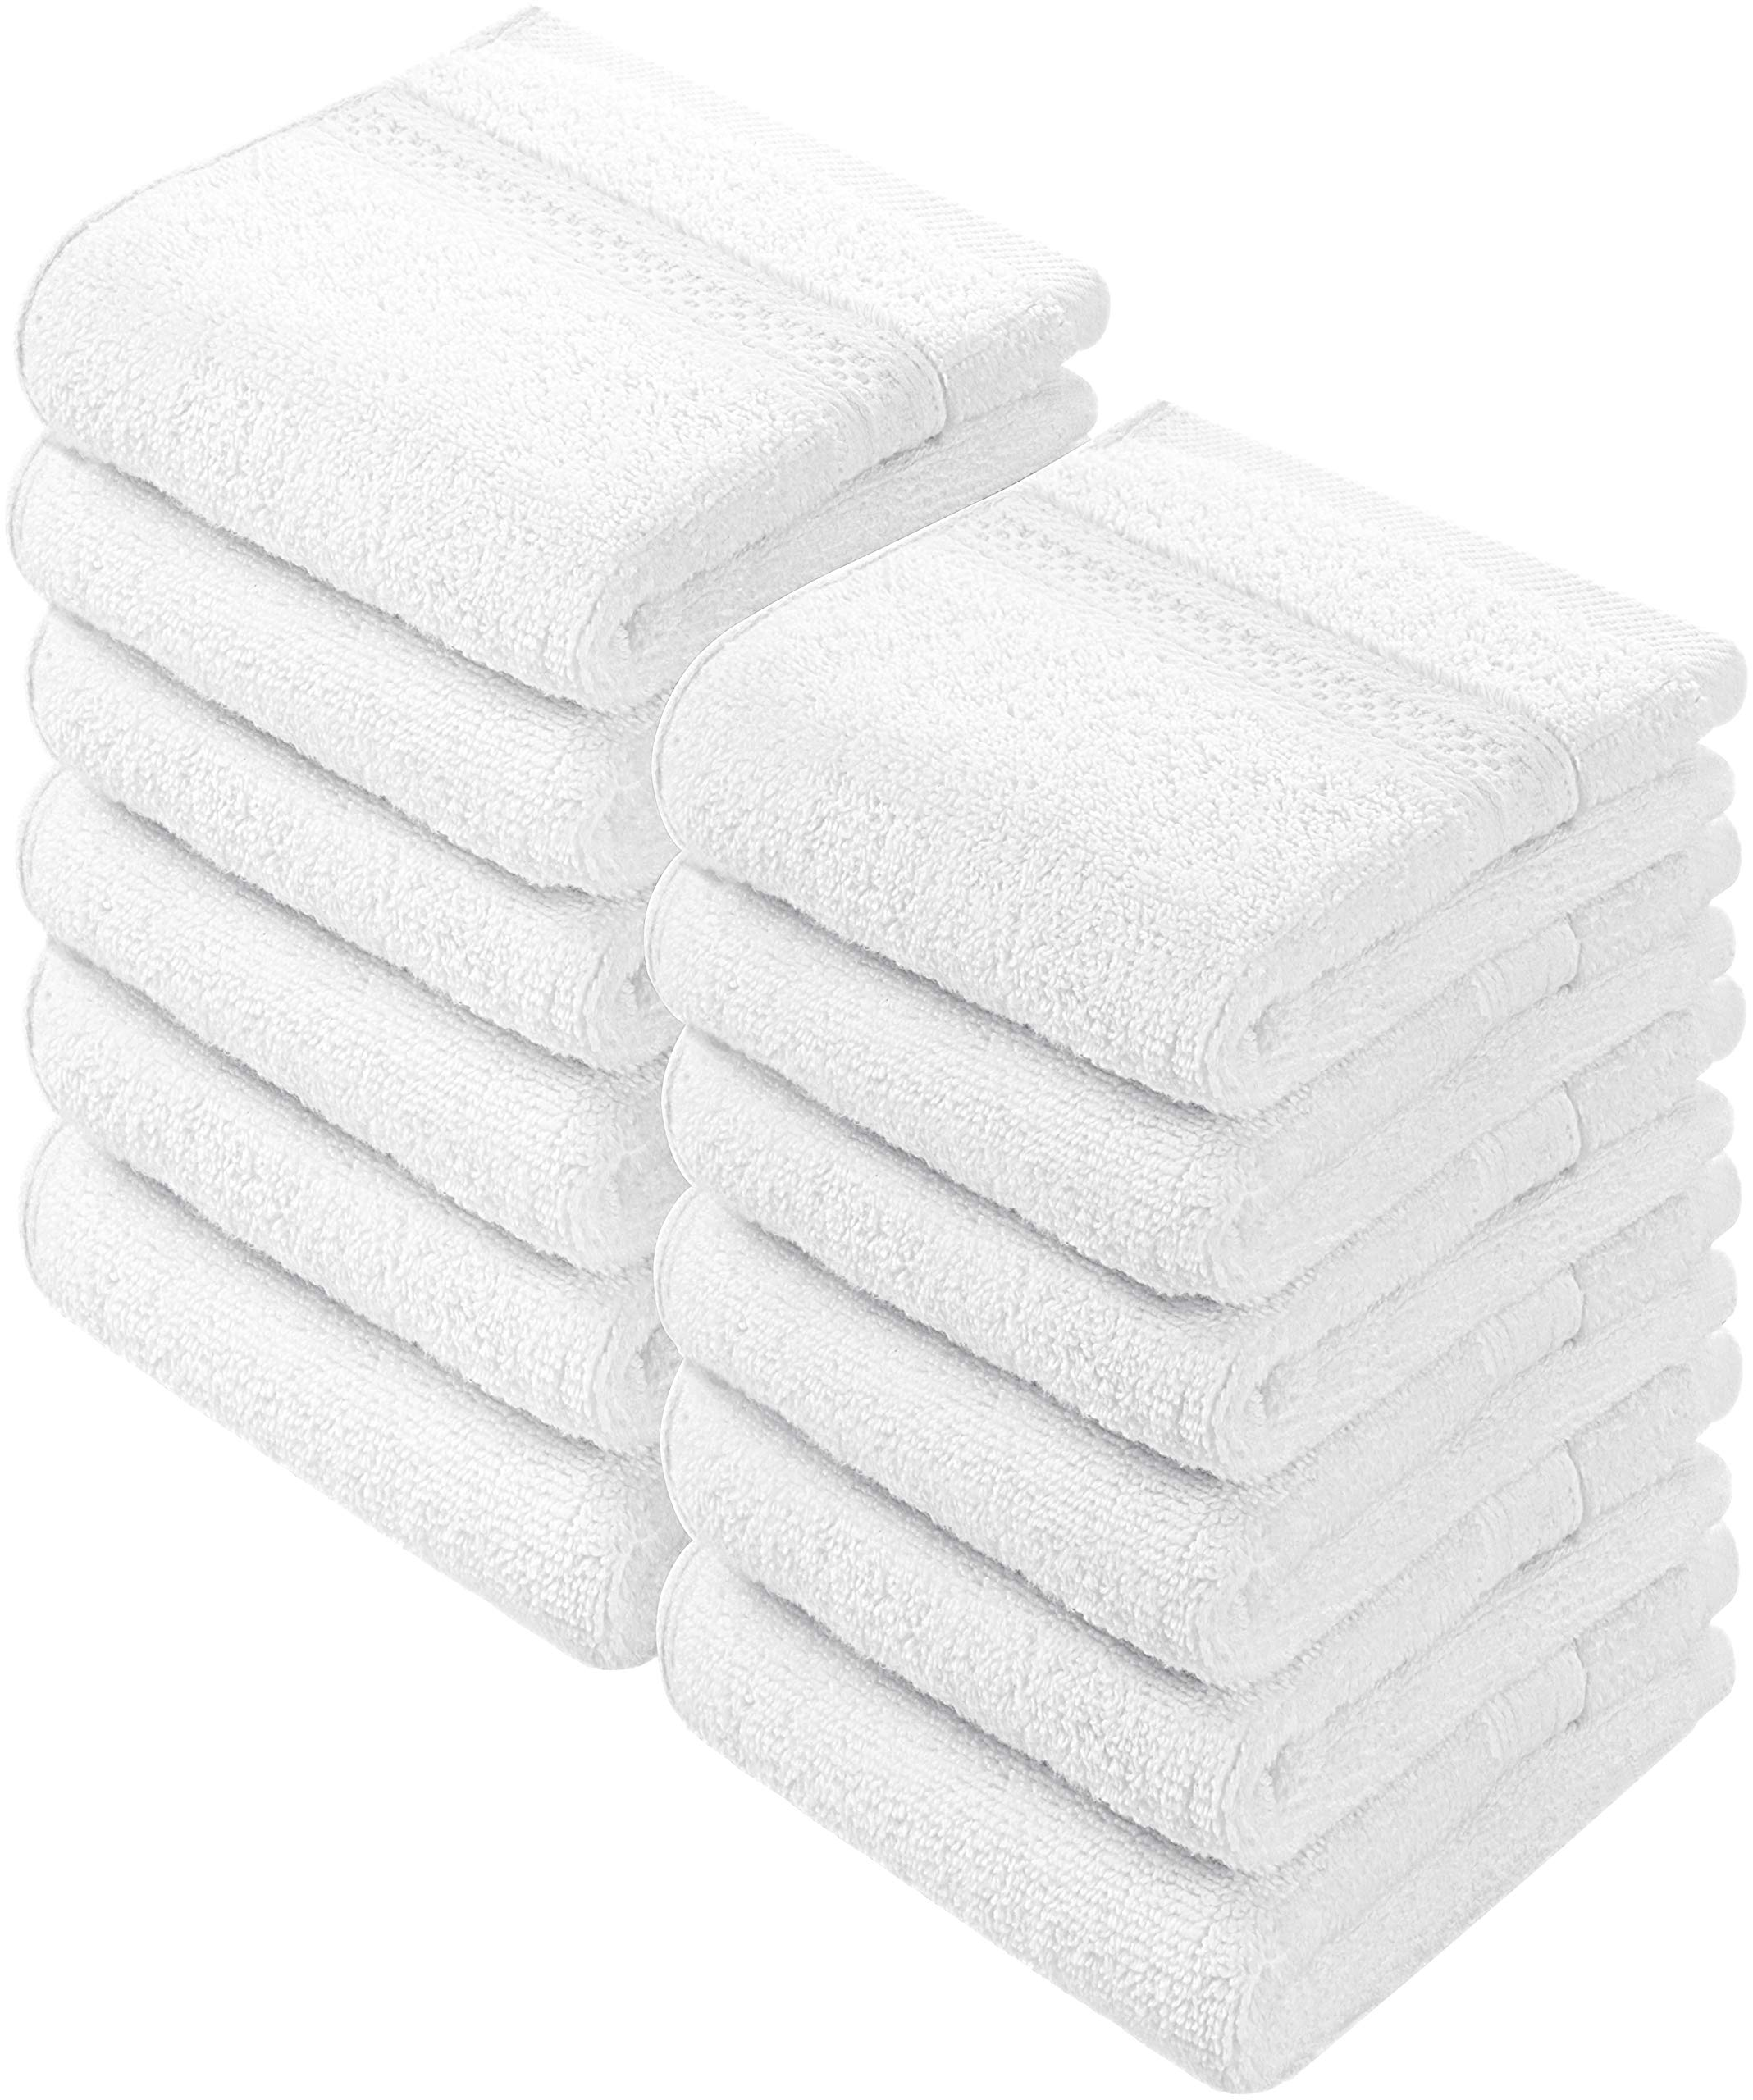 Utopia Towels Premium 252 Pack 700 GSM Cotton Washcloths Bulk– (12 x 12 Inches Face Towels Bulk) Extra Soft Wash Cloths, White